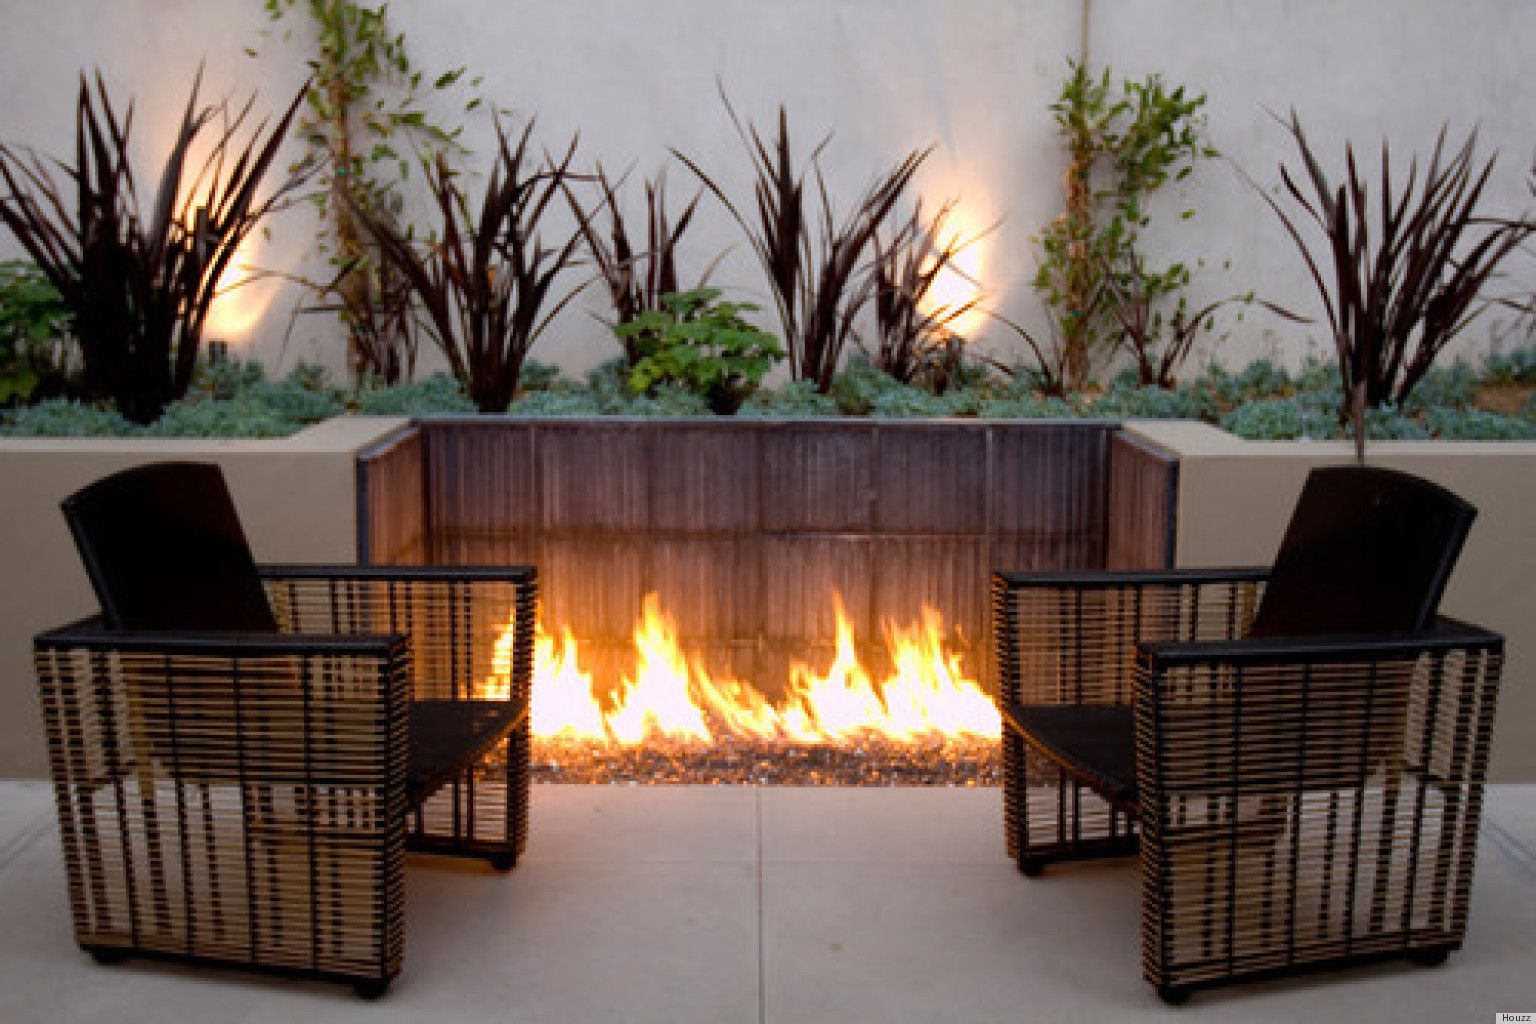 10 Outdoor Fire Pits That Will Take A Backyard From Ordinary To Extraordinary Photos The Huffington P Fire Pit Backyard Backyard Fire Backyard Seating Area